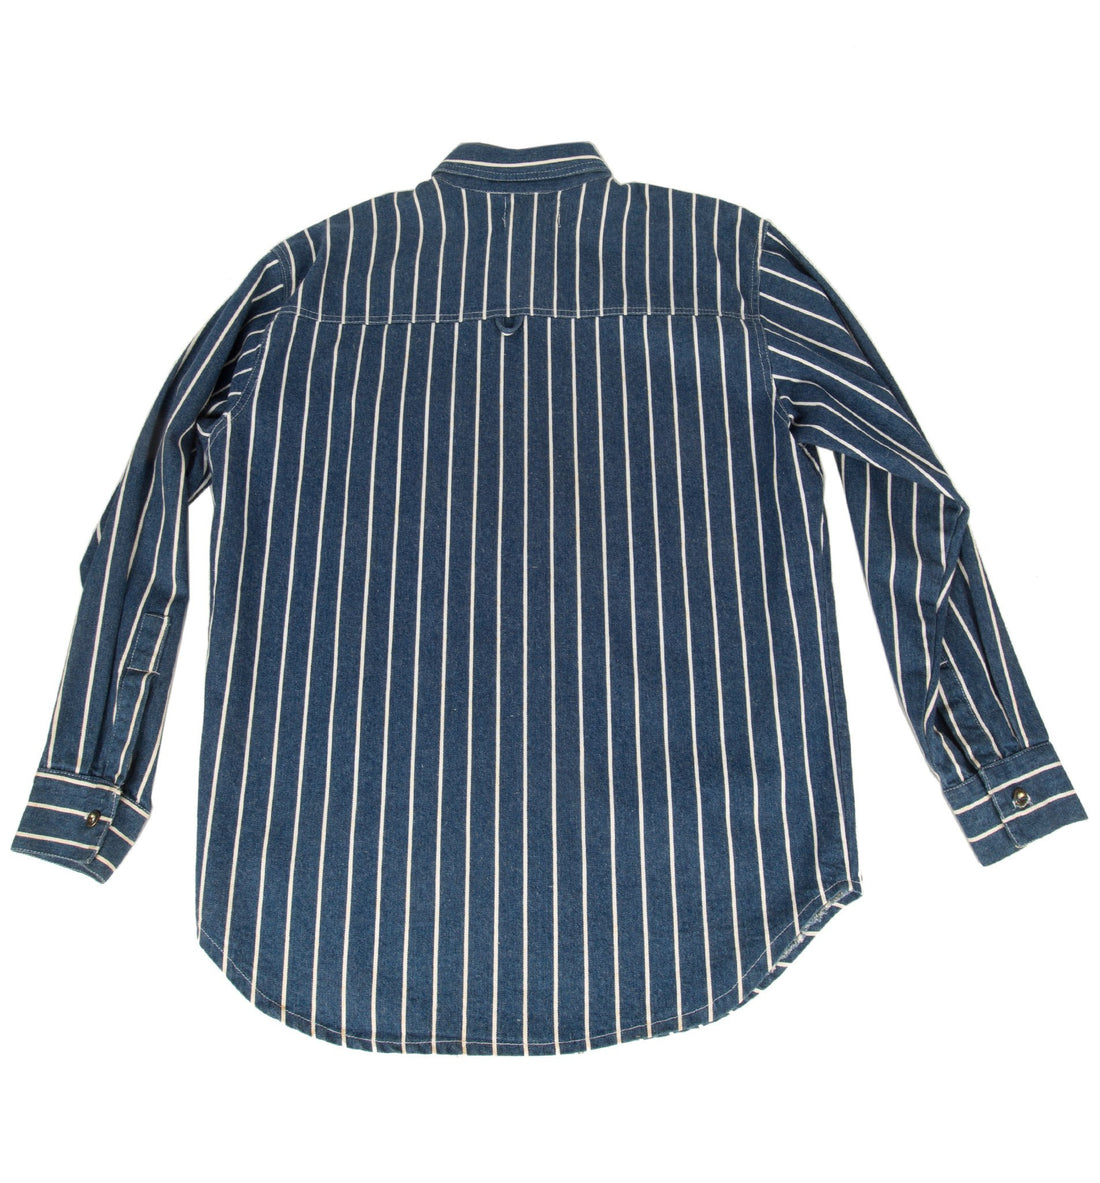 Vintage 60's Levis Blue/White Stripe Button Up Shirt - Vintage - Iron and Resin